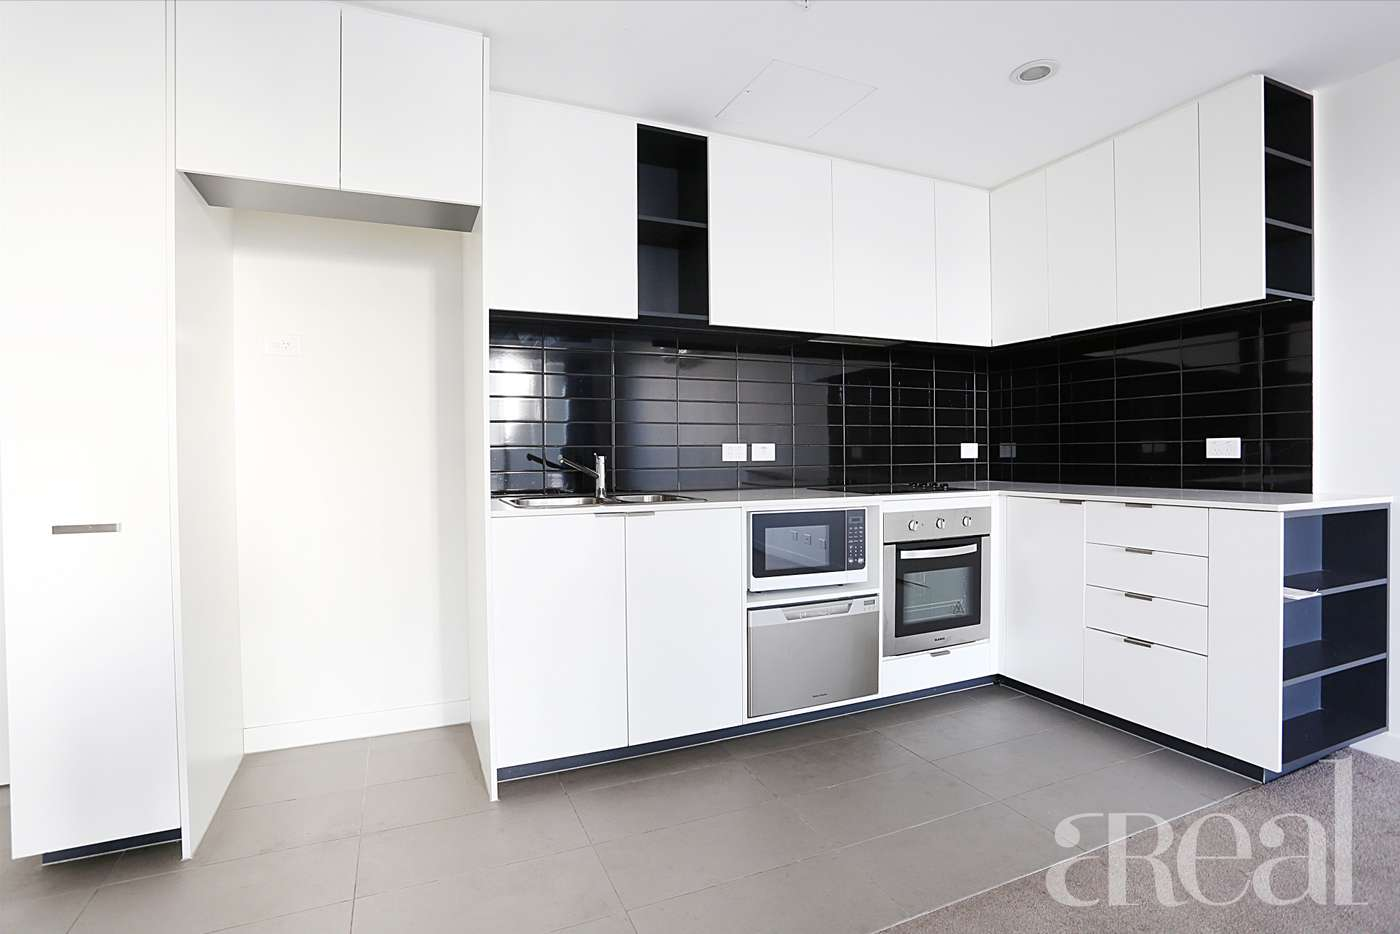 Sixth view of Homely apartment listing, 1104/55 Merchant Street, Docklands VIC 3008